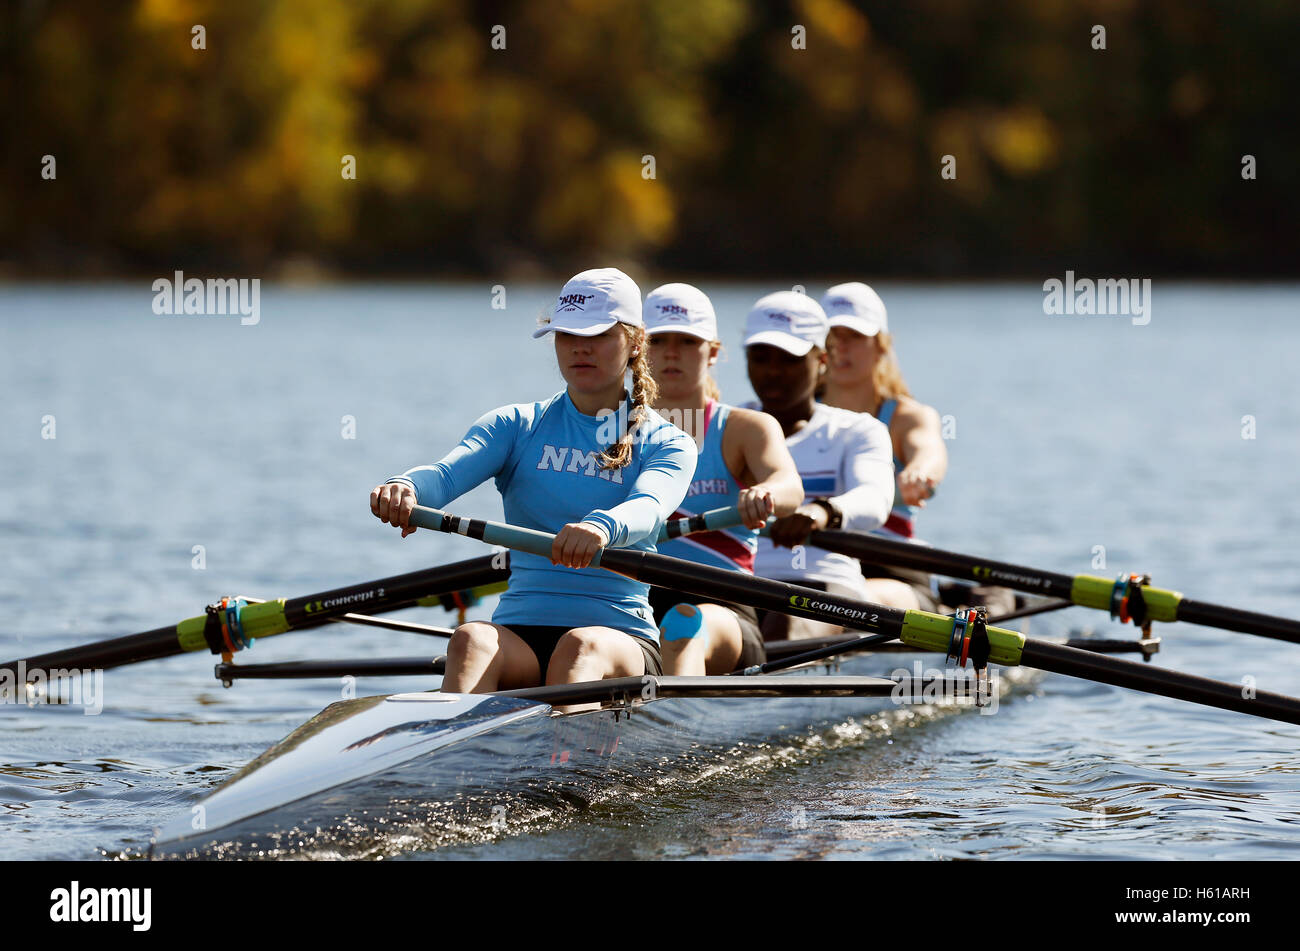 High school sports d'équipe, de l'aviron sur la rivière Connecticut, Gill, Massachusetts Photo Stock